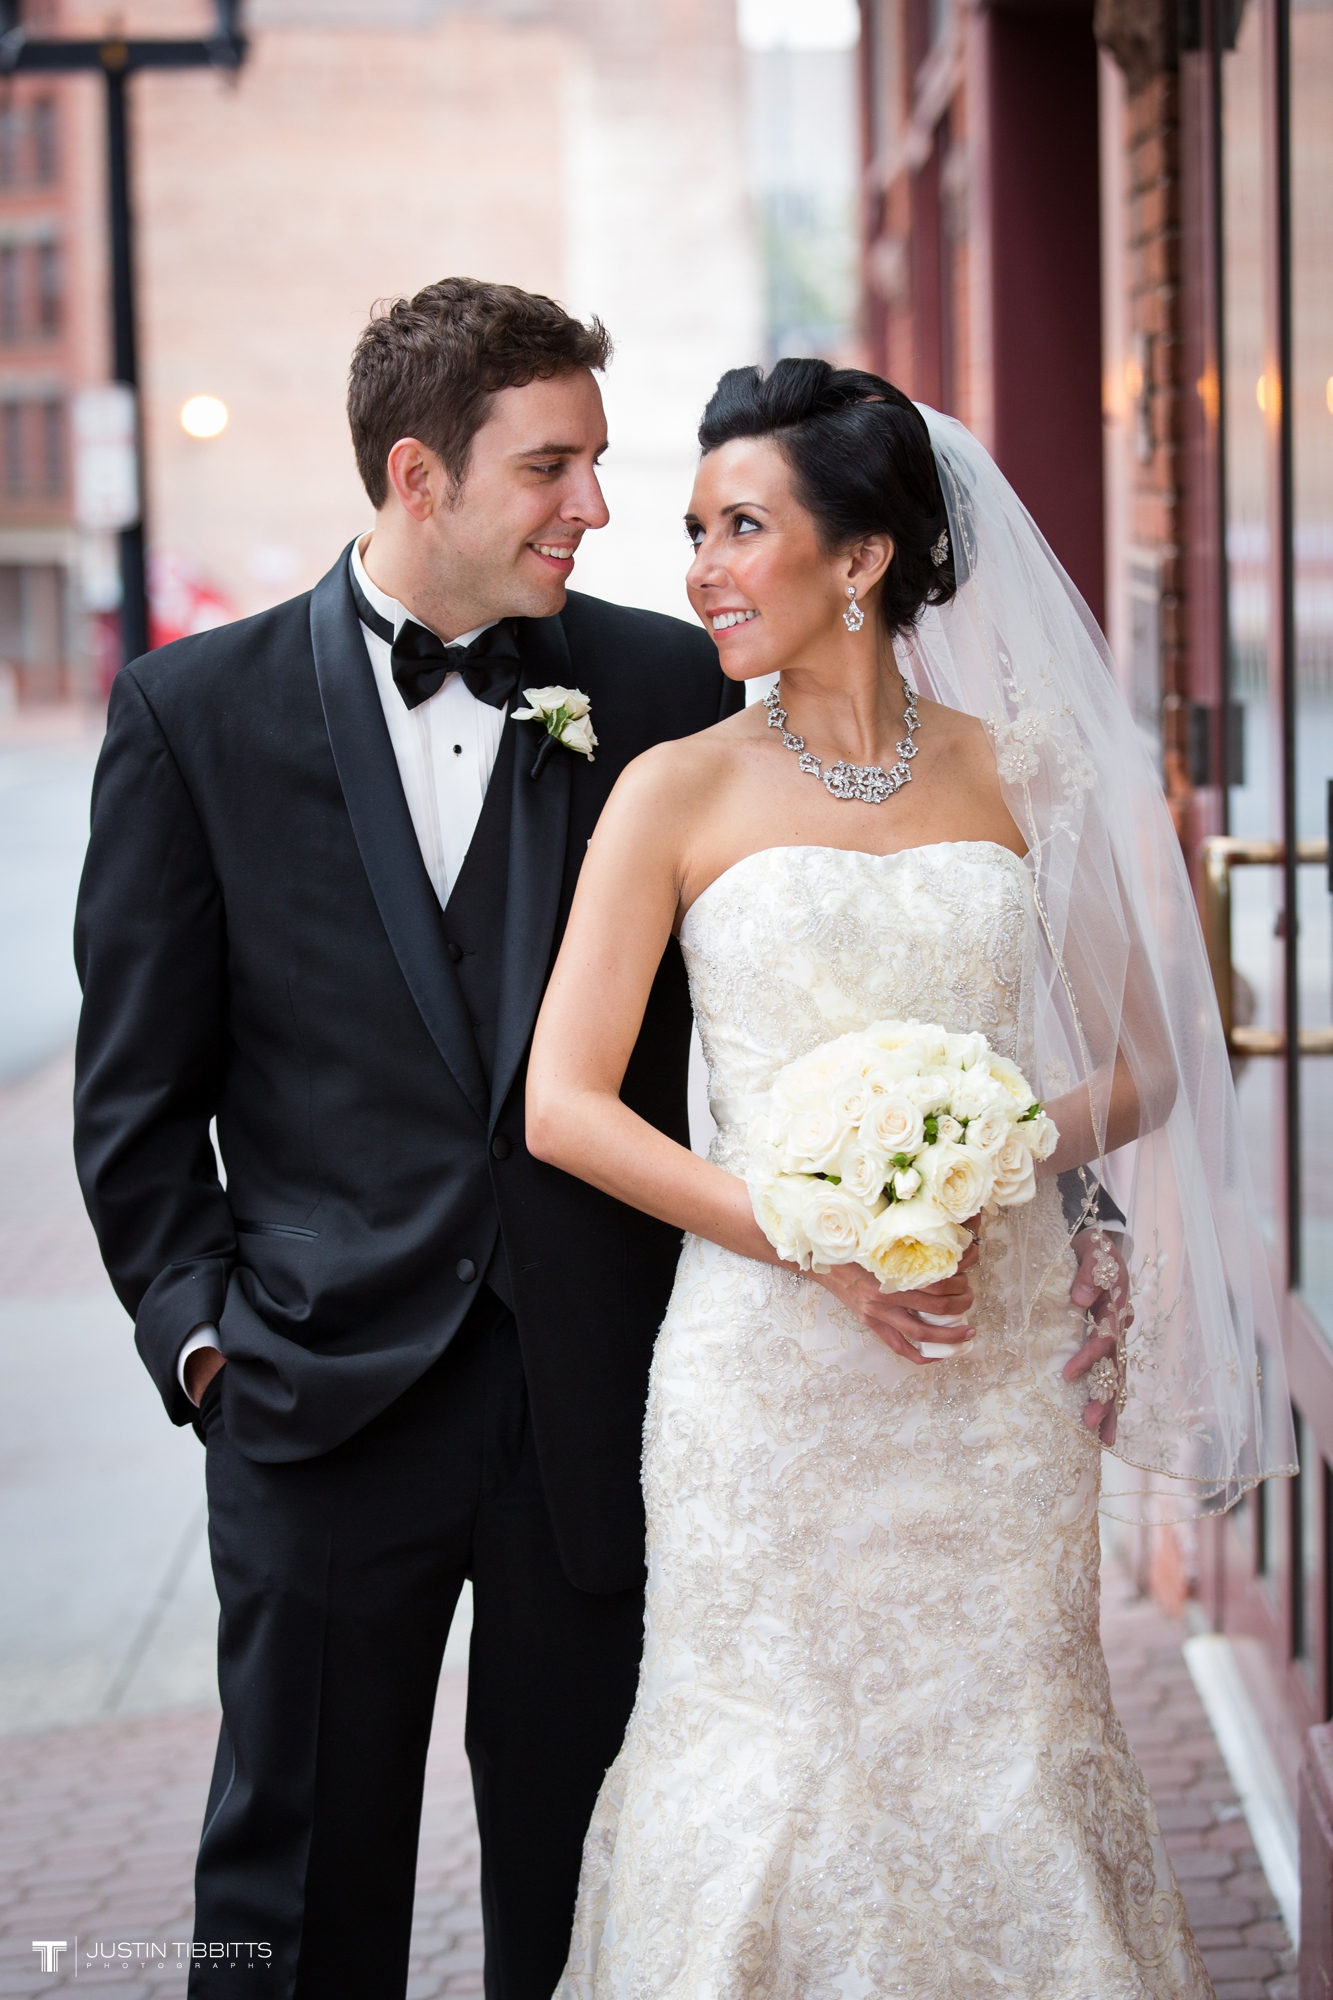 Justin Tibbitts Photography Mr and Mrs Vandenbergh Albany, NY Taste Wedding-15